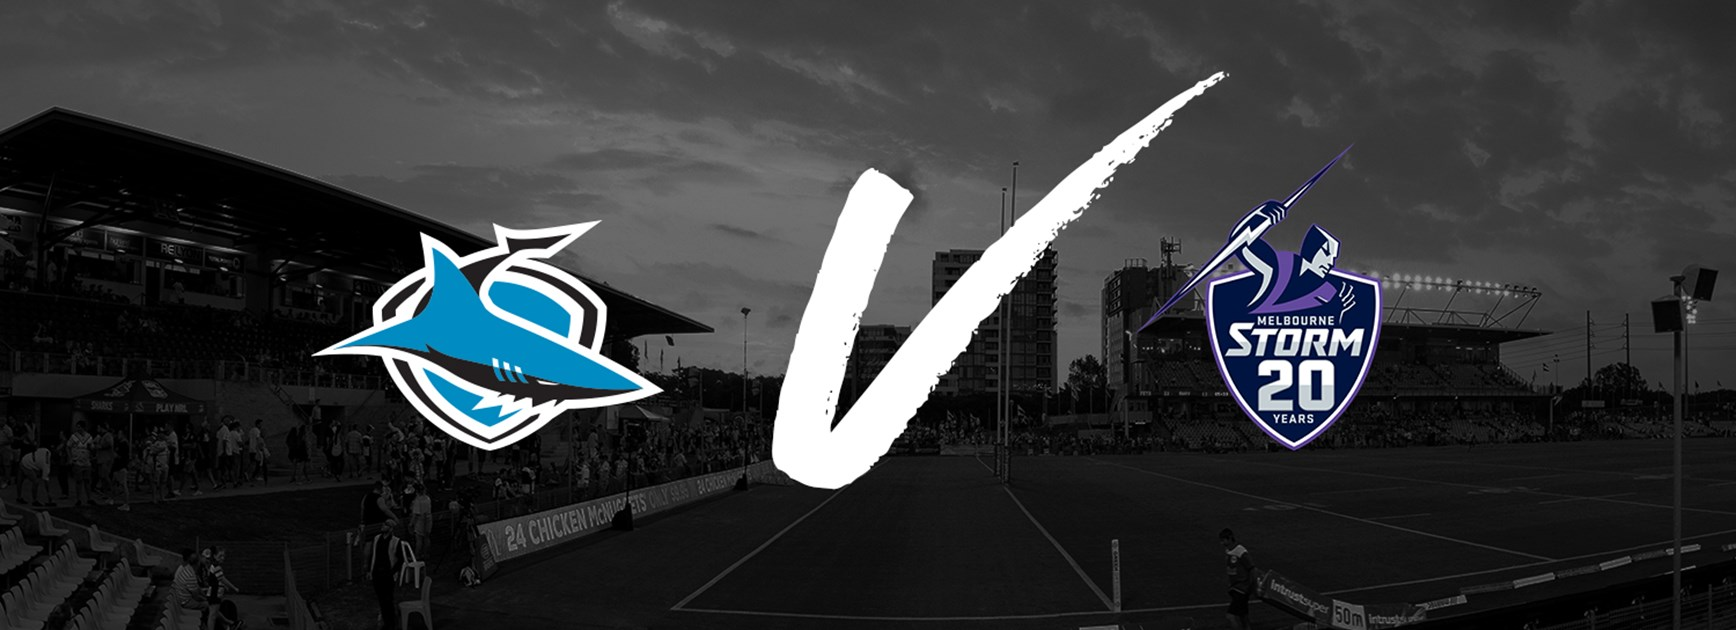 Match Preview - Sharks v Storm